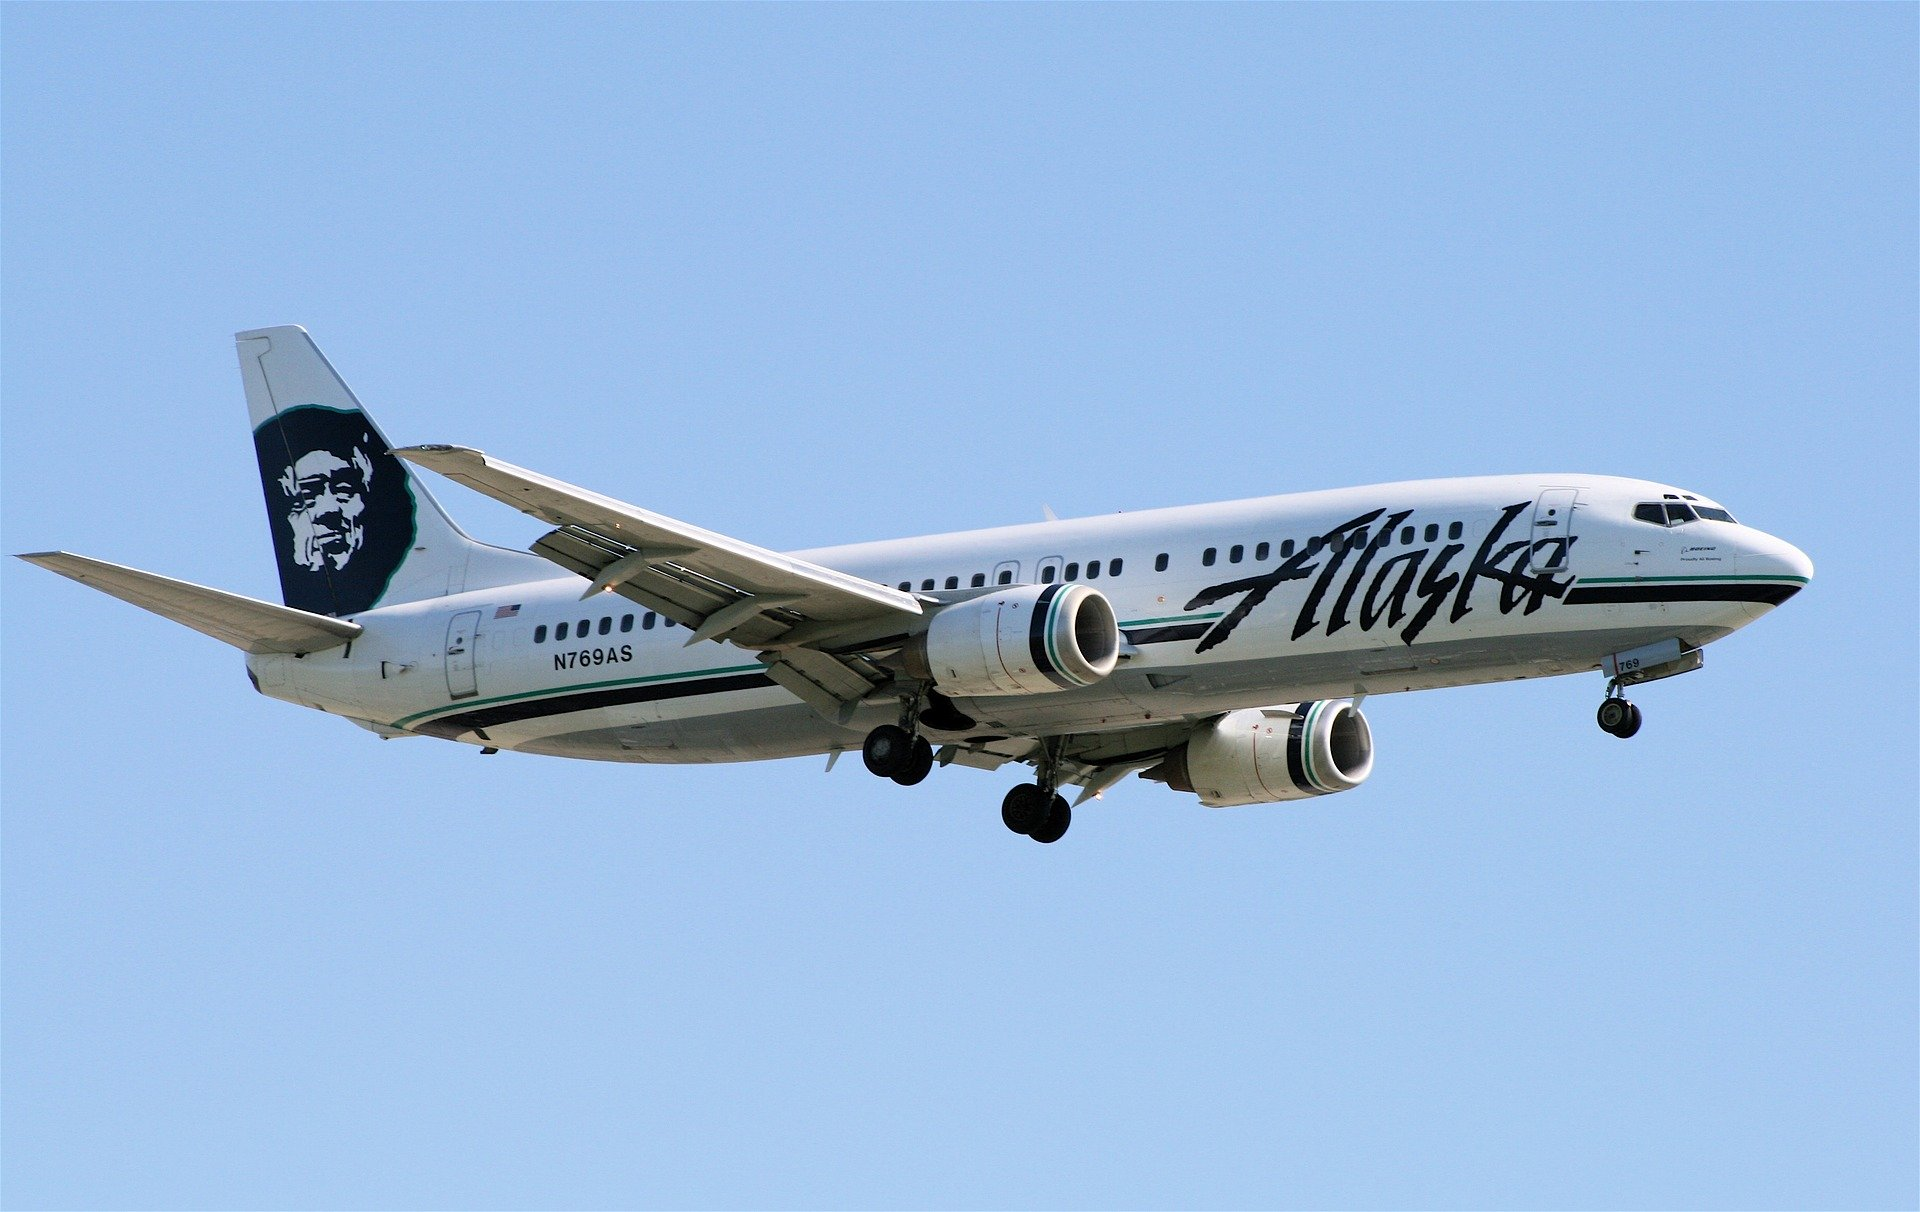 Save 30% Off Alaska Airlines Flights!